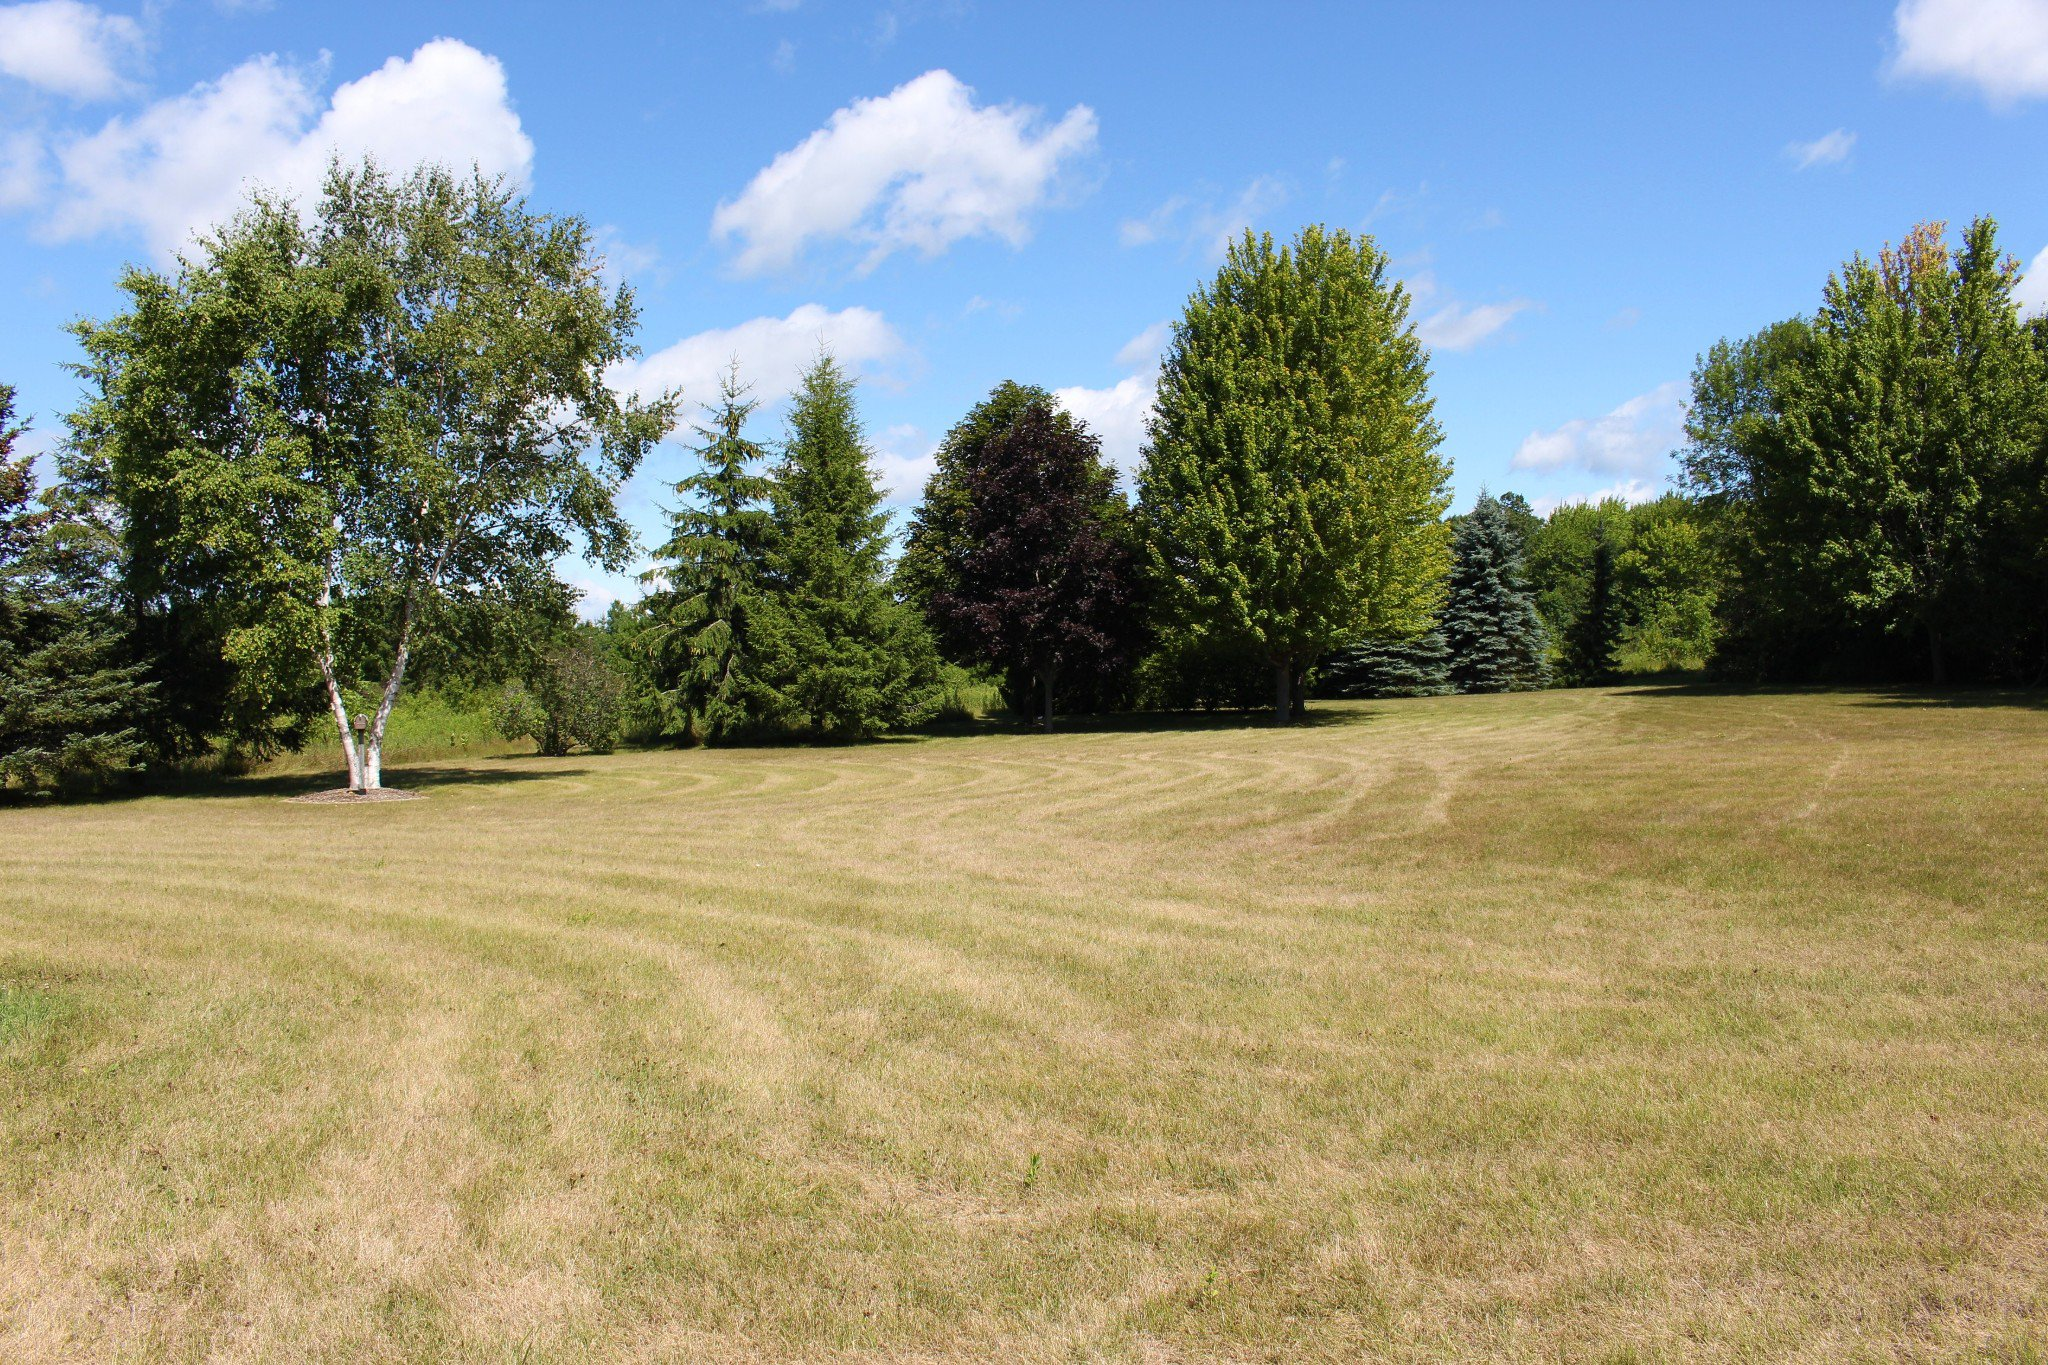 Photo 46: Photos: 159 Nawautin Drive in Grafton: Residential Detached for sale : MLS®# 40012652